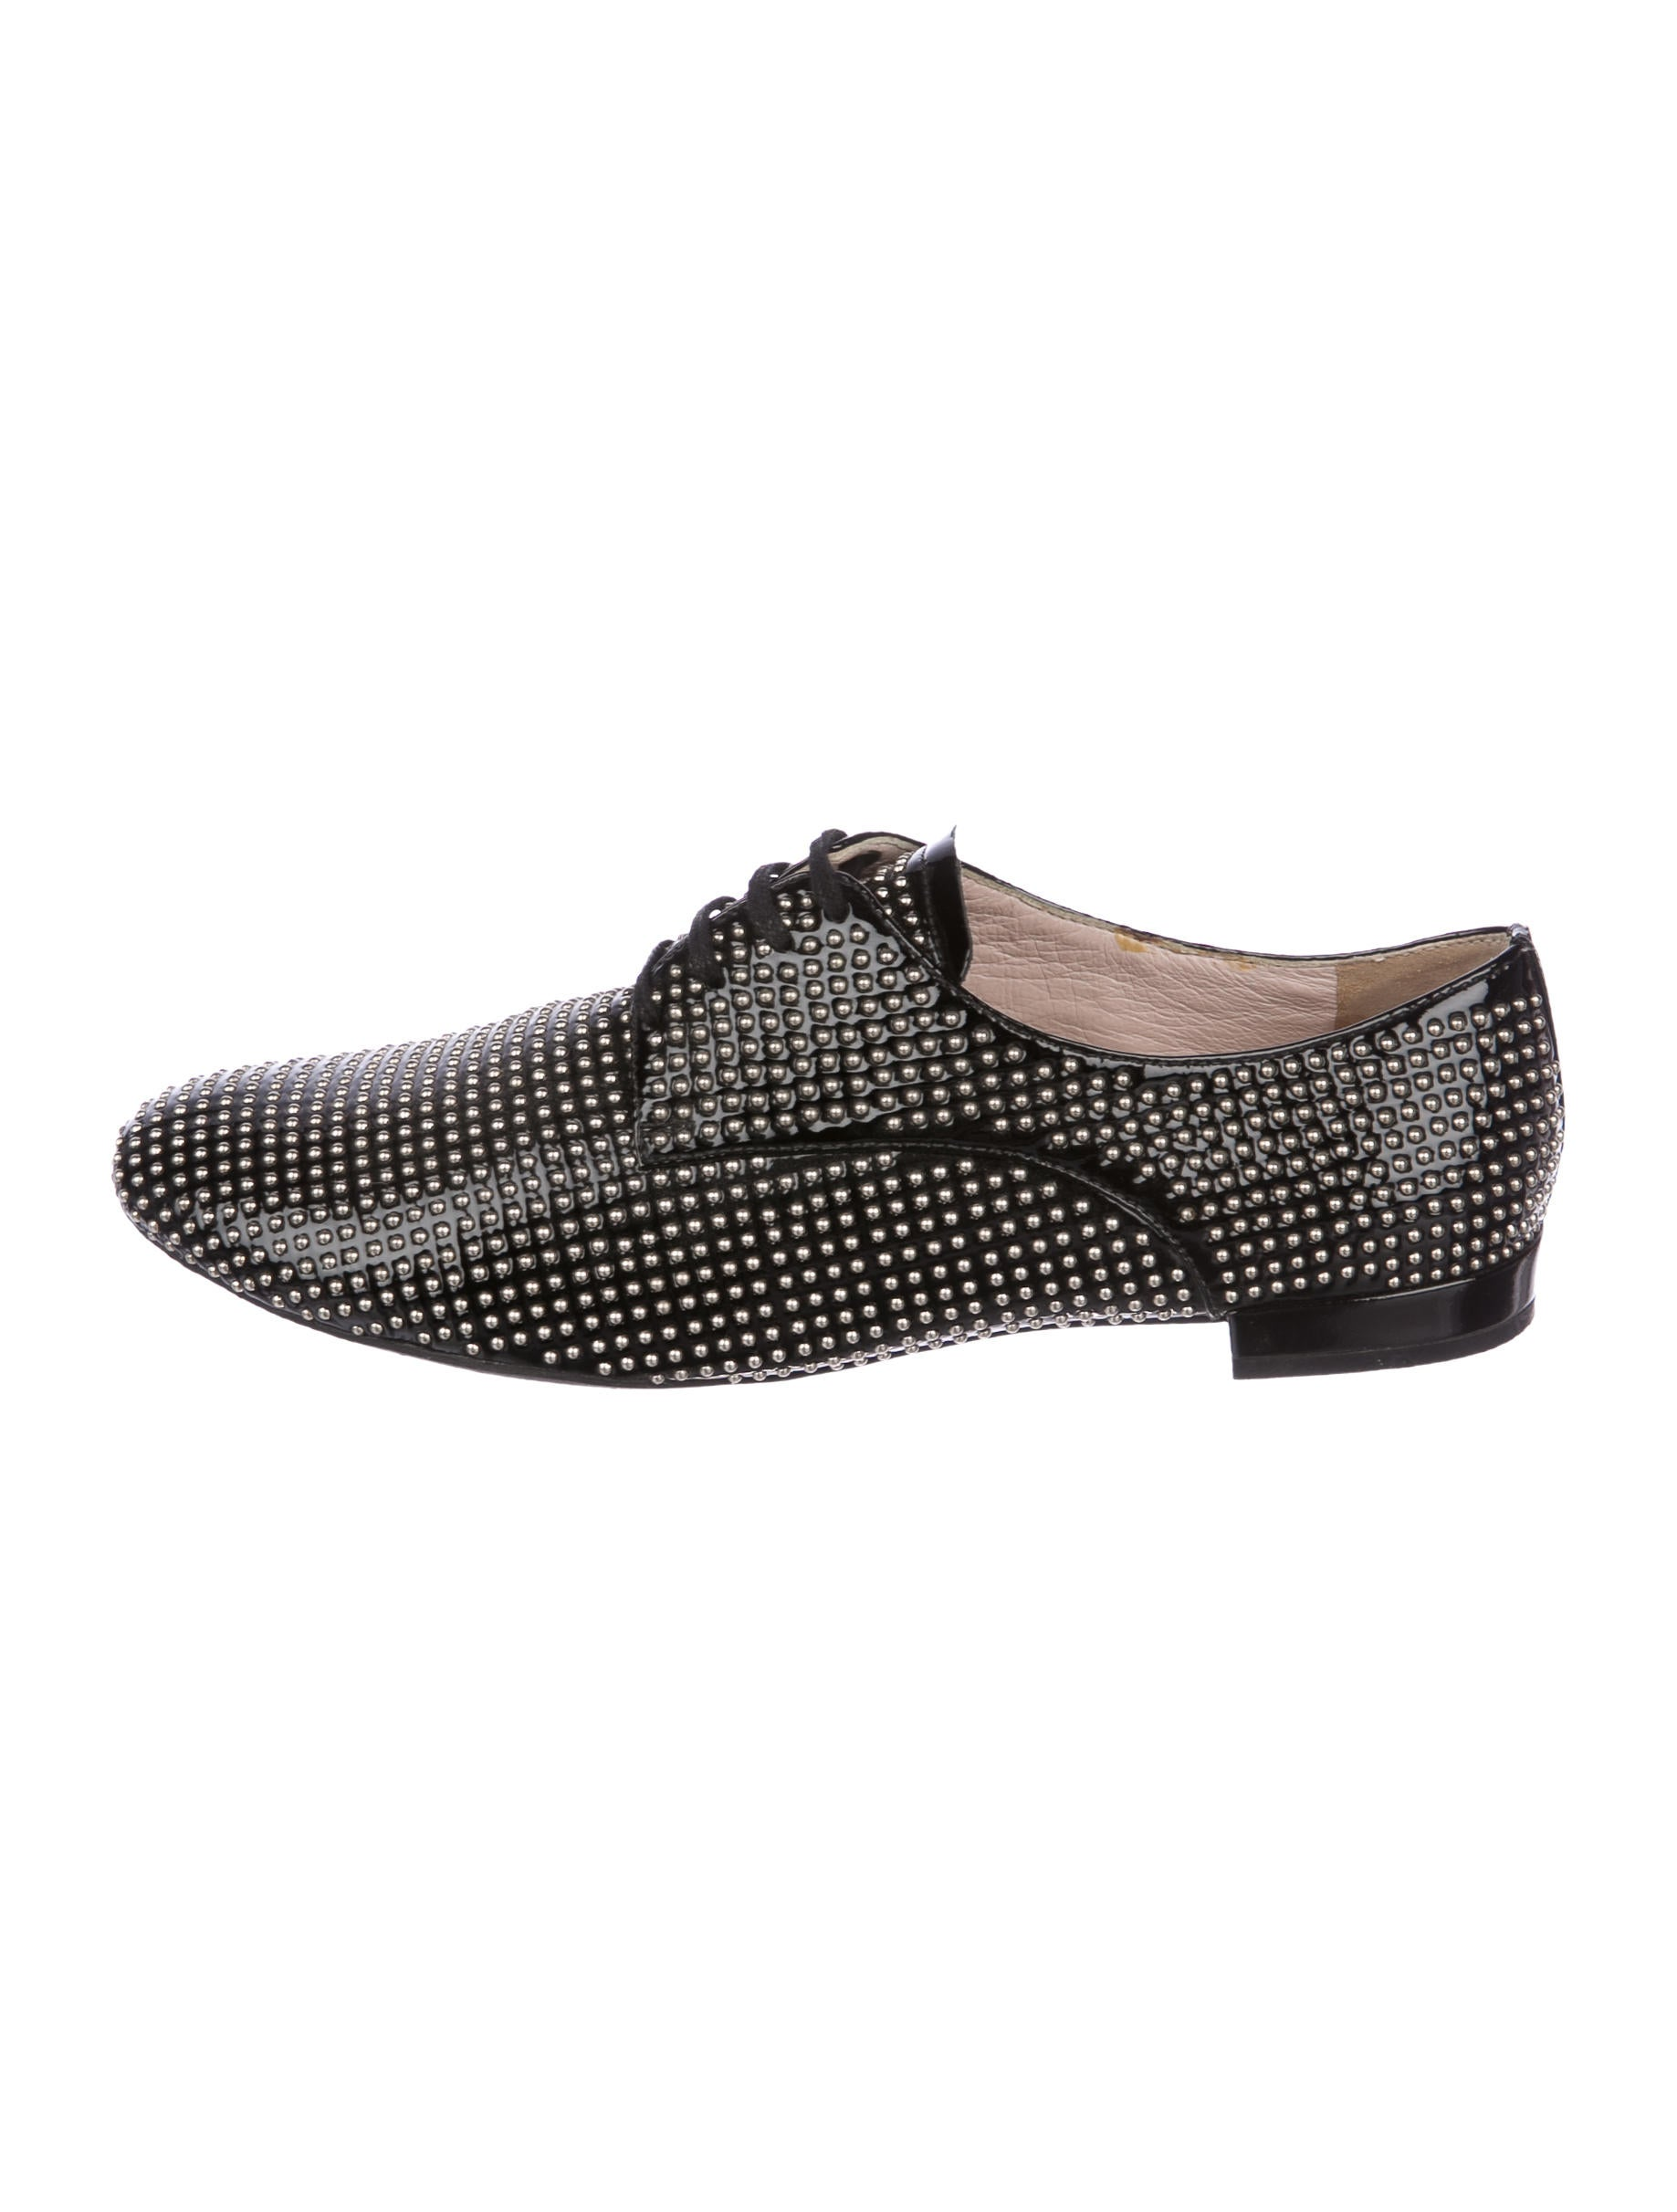 Miu Miu Patent Leather Studded Oxfords free shipping wholesale price cheap price pre order clearance enjoy discount brand new unisex sale top quality ELjiv5H